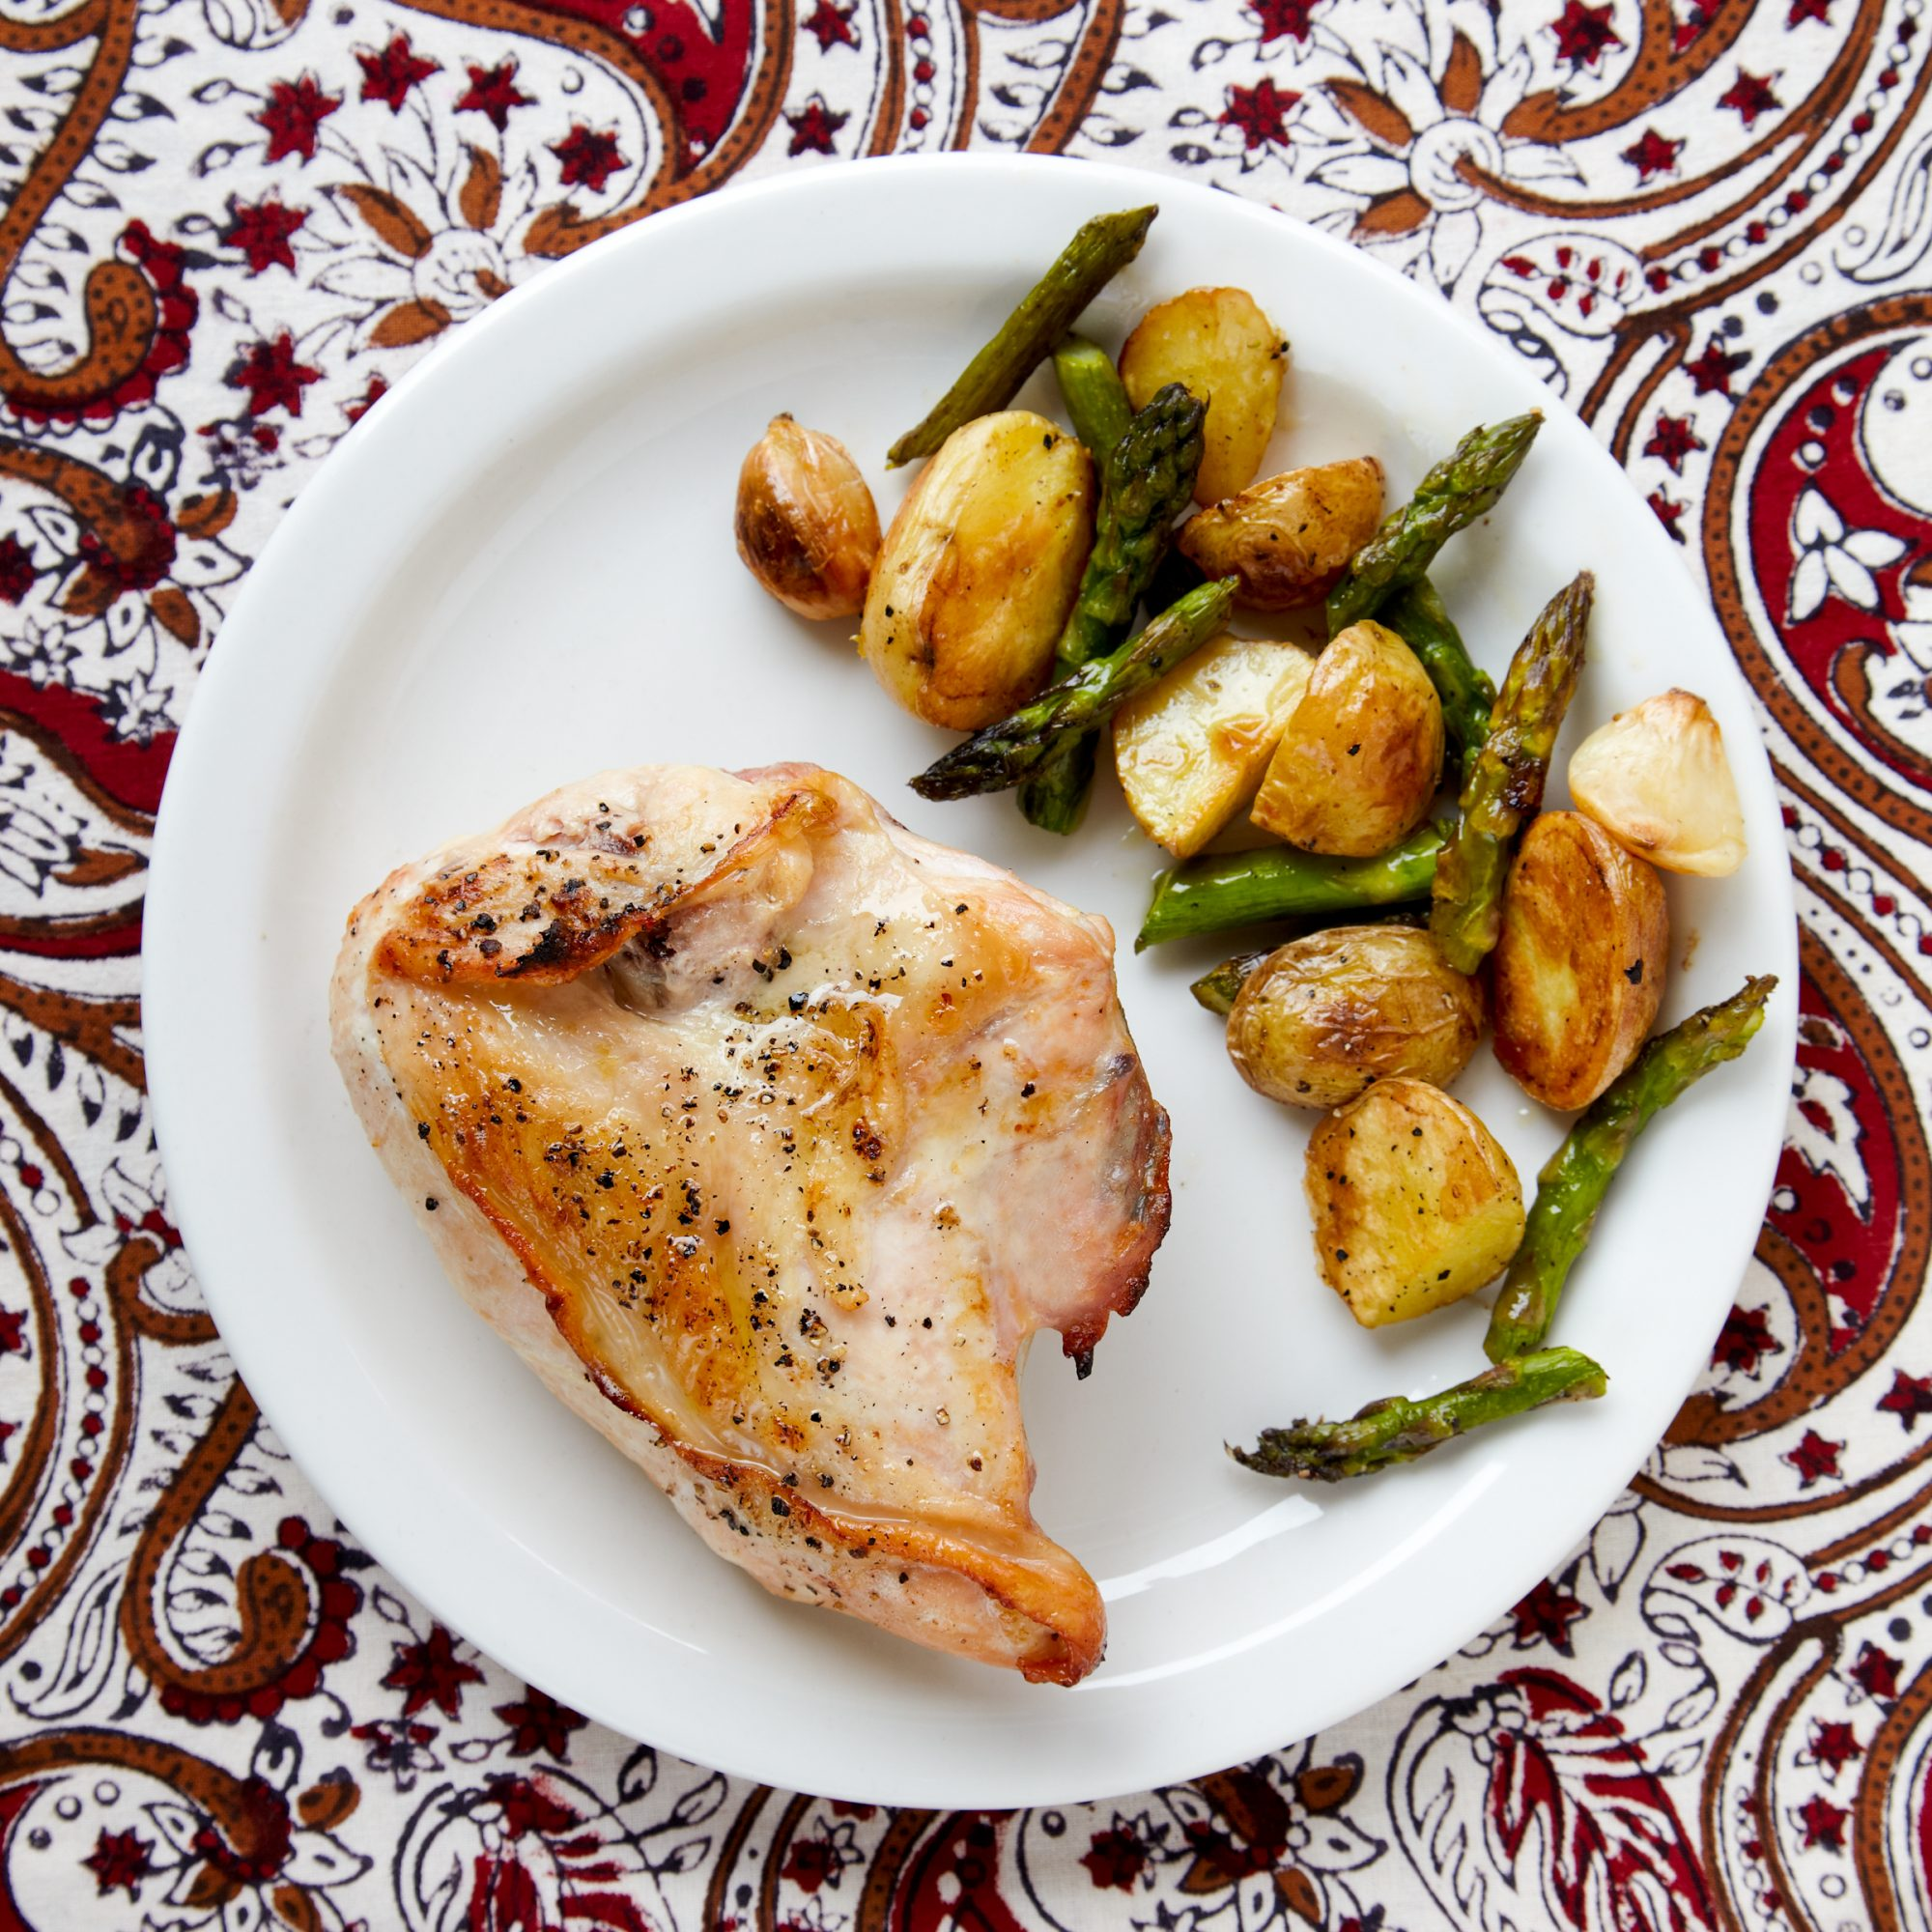 Roasted Chicken New Potatoes And Asparagus Recipe Quick From Scratch One Dish Meals Food